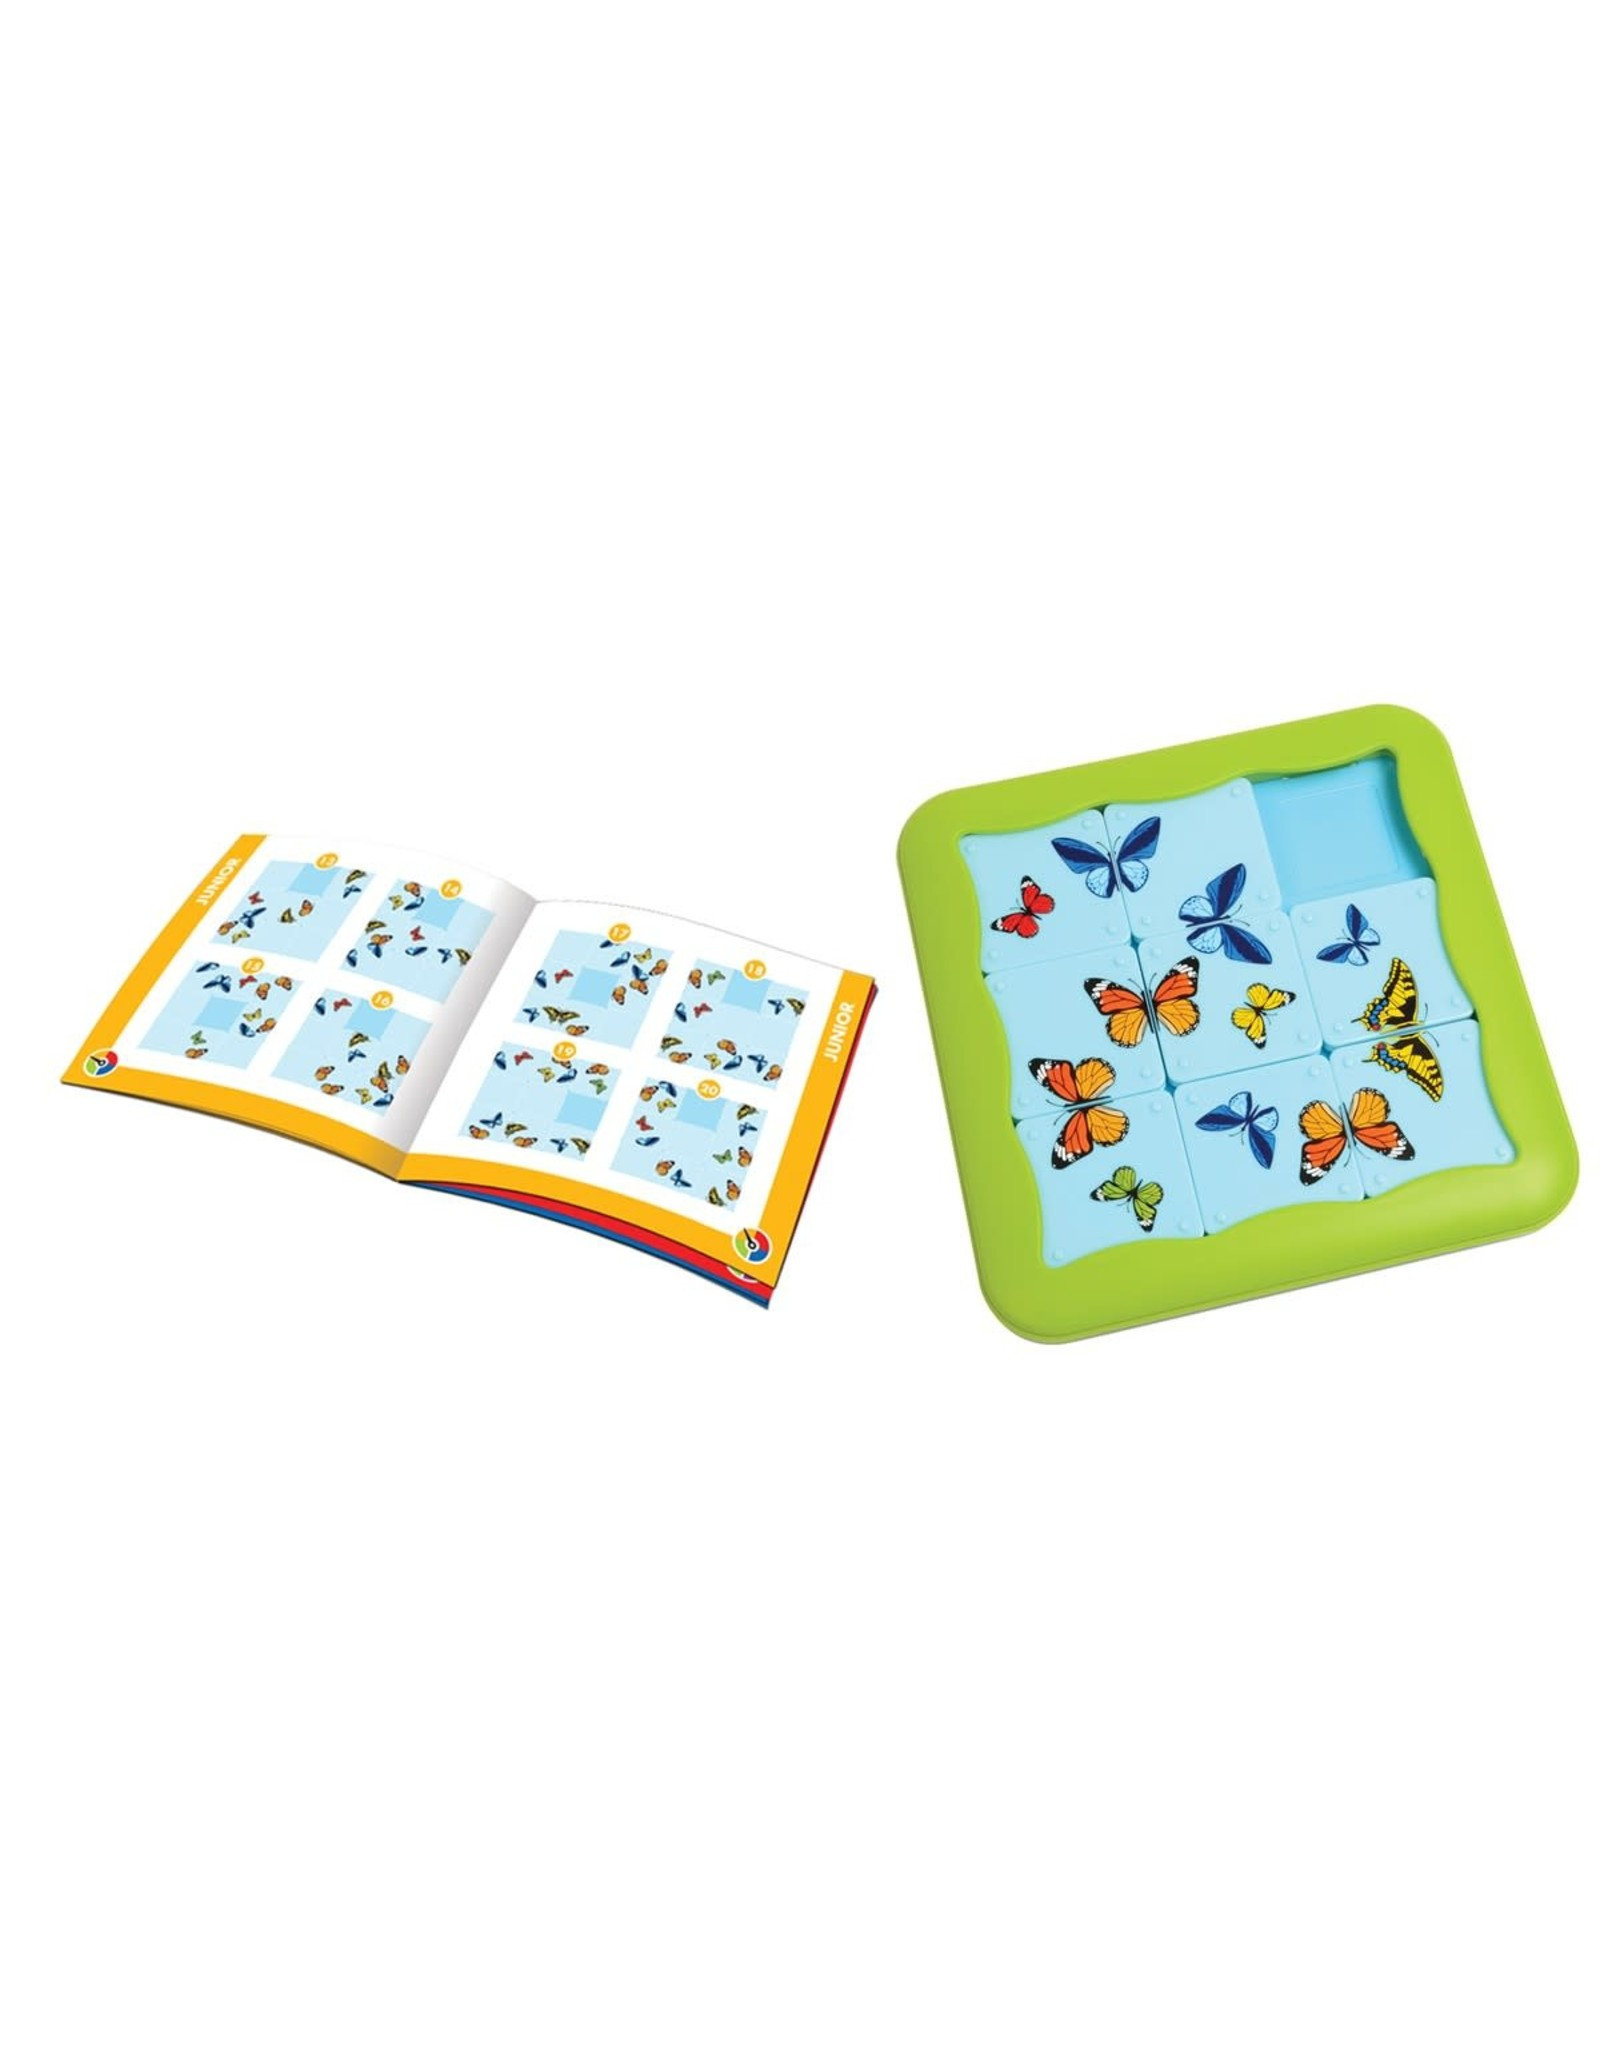 Smart Smart Games Compact - Butterflies